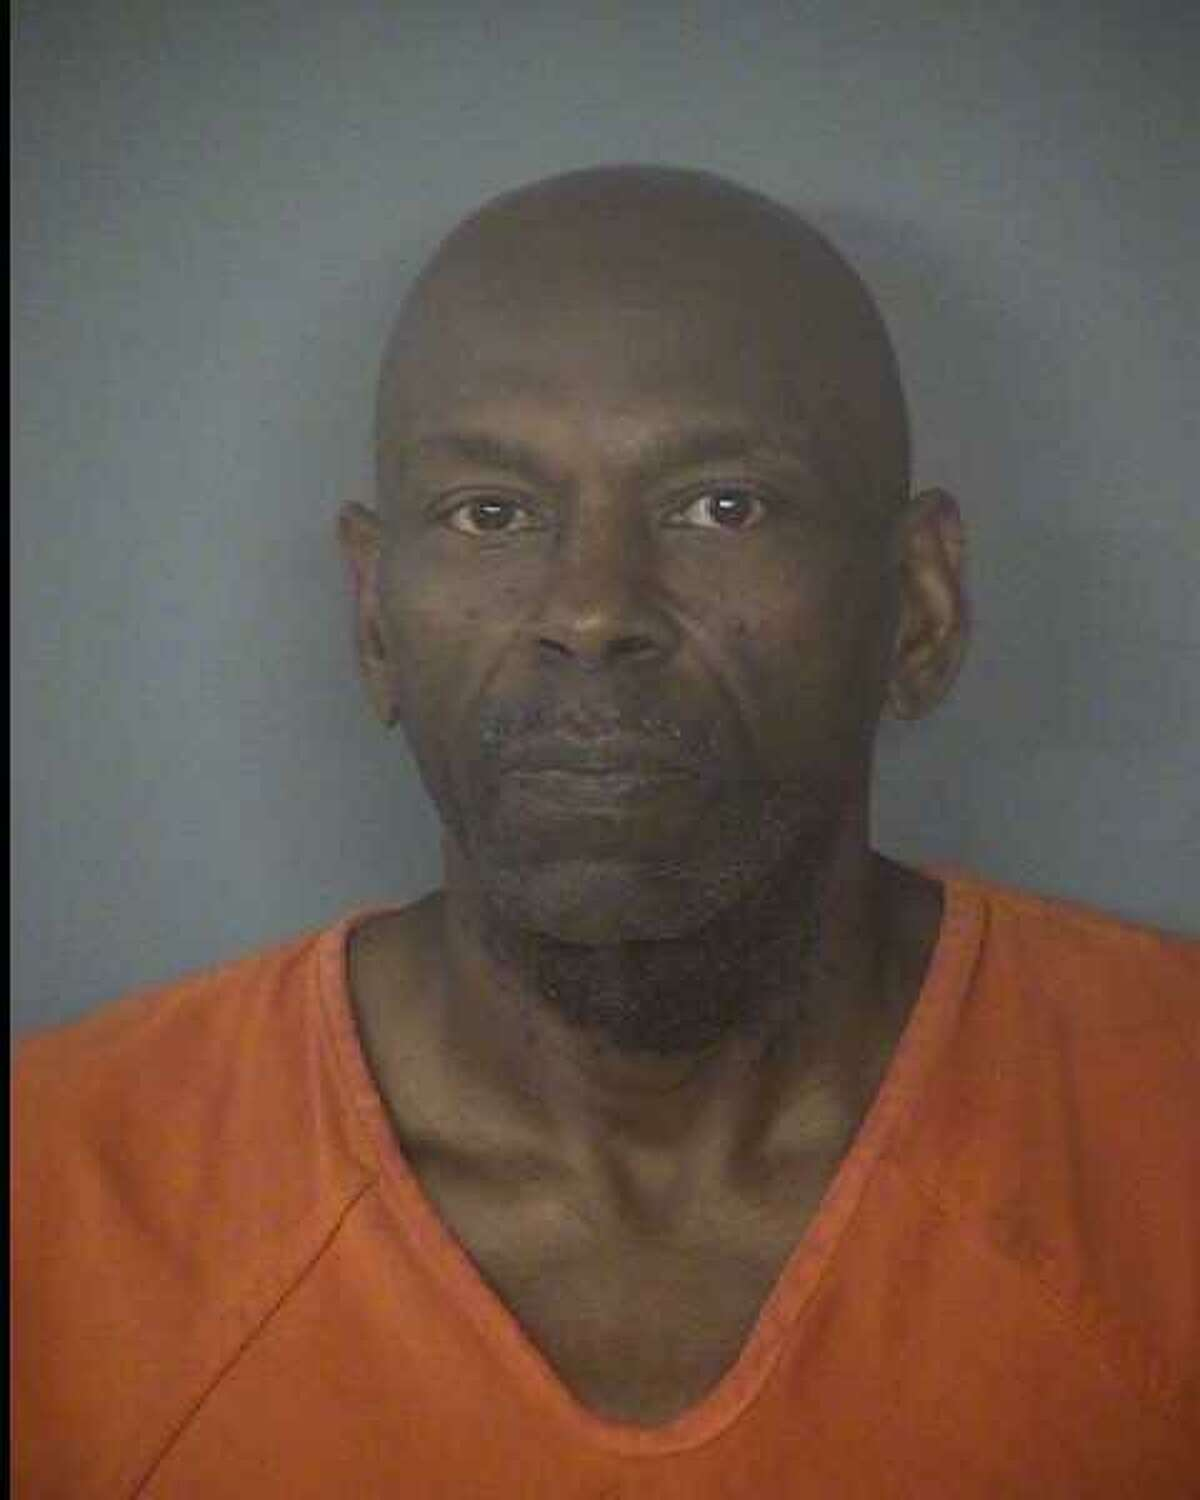 Michael Rene Johnson, 57, died just after midnight Saturday after an apparent medical episode at the Bexar County jail.